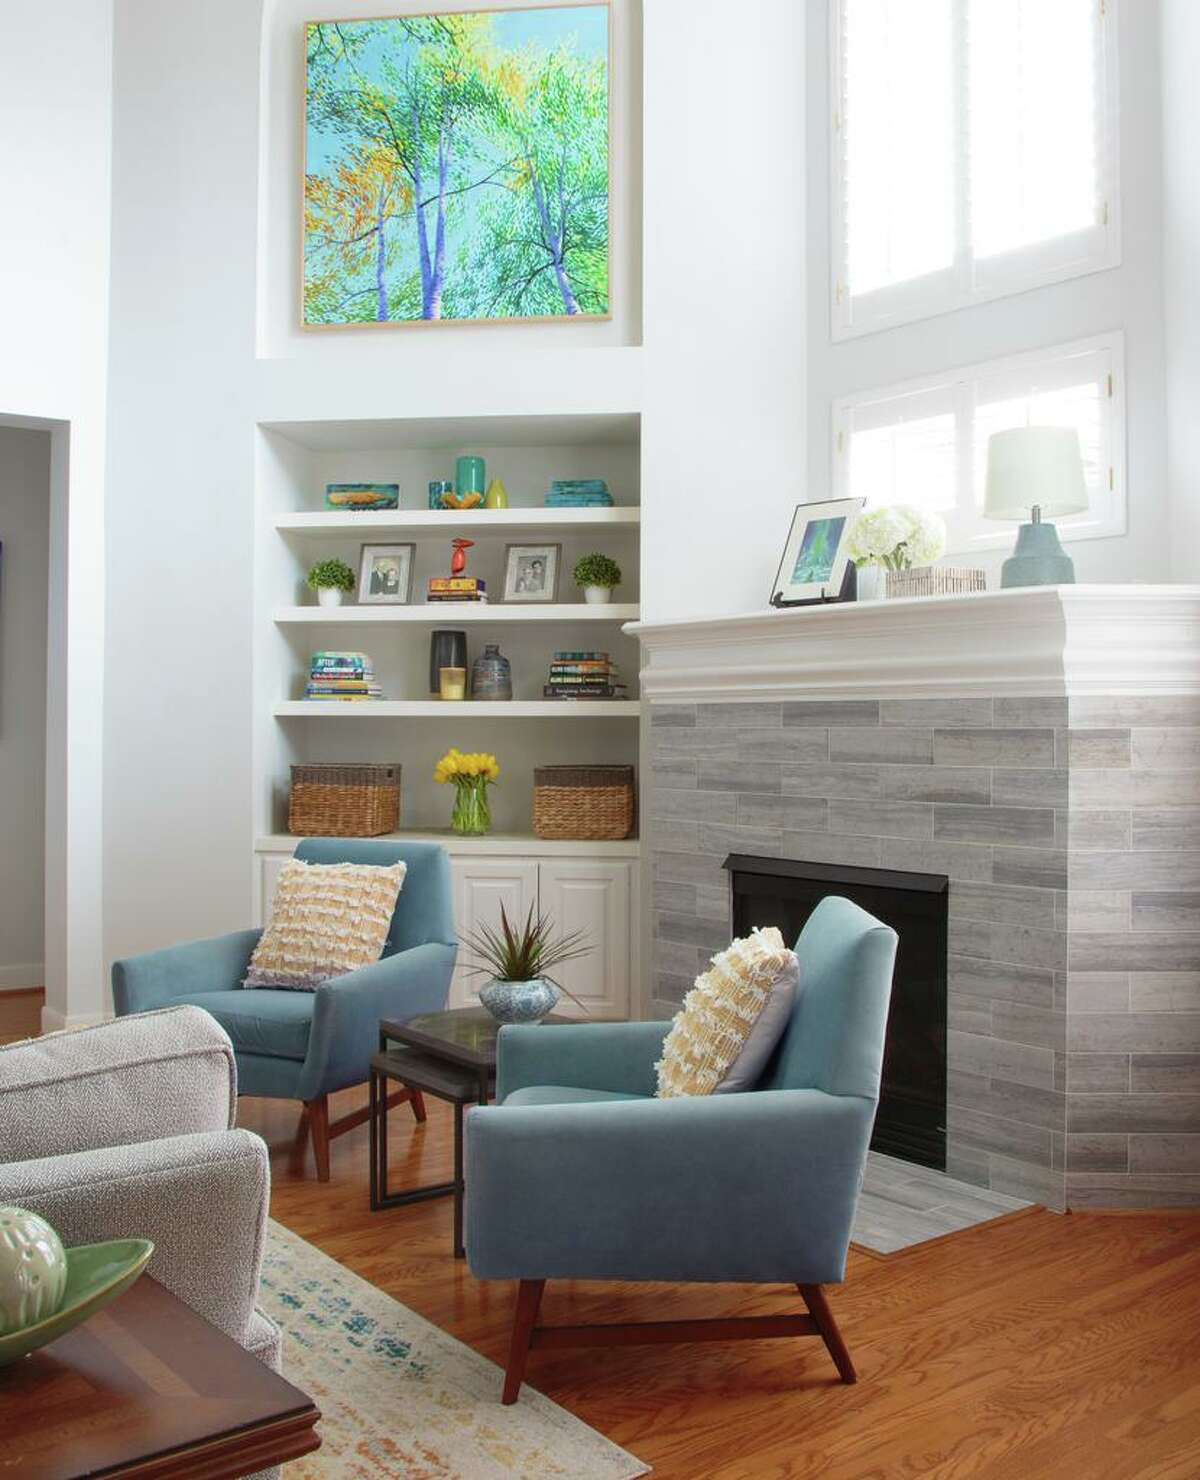 Now, the fireplace has gray-white tile and built-in cabinets that once held a TV are now display shelves.